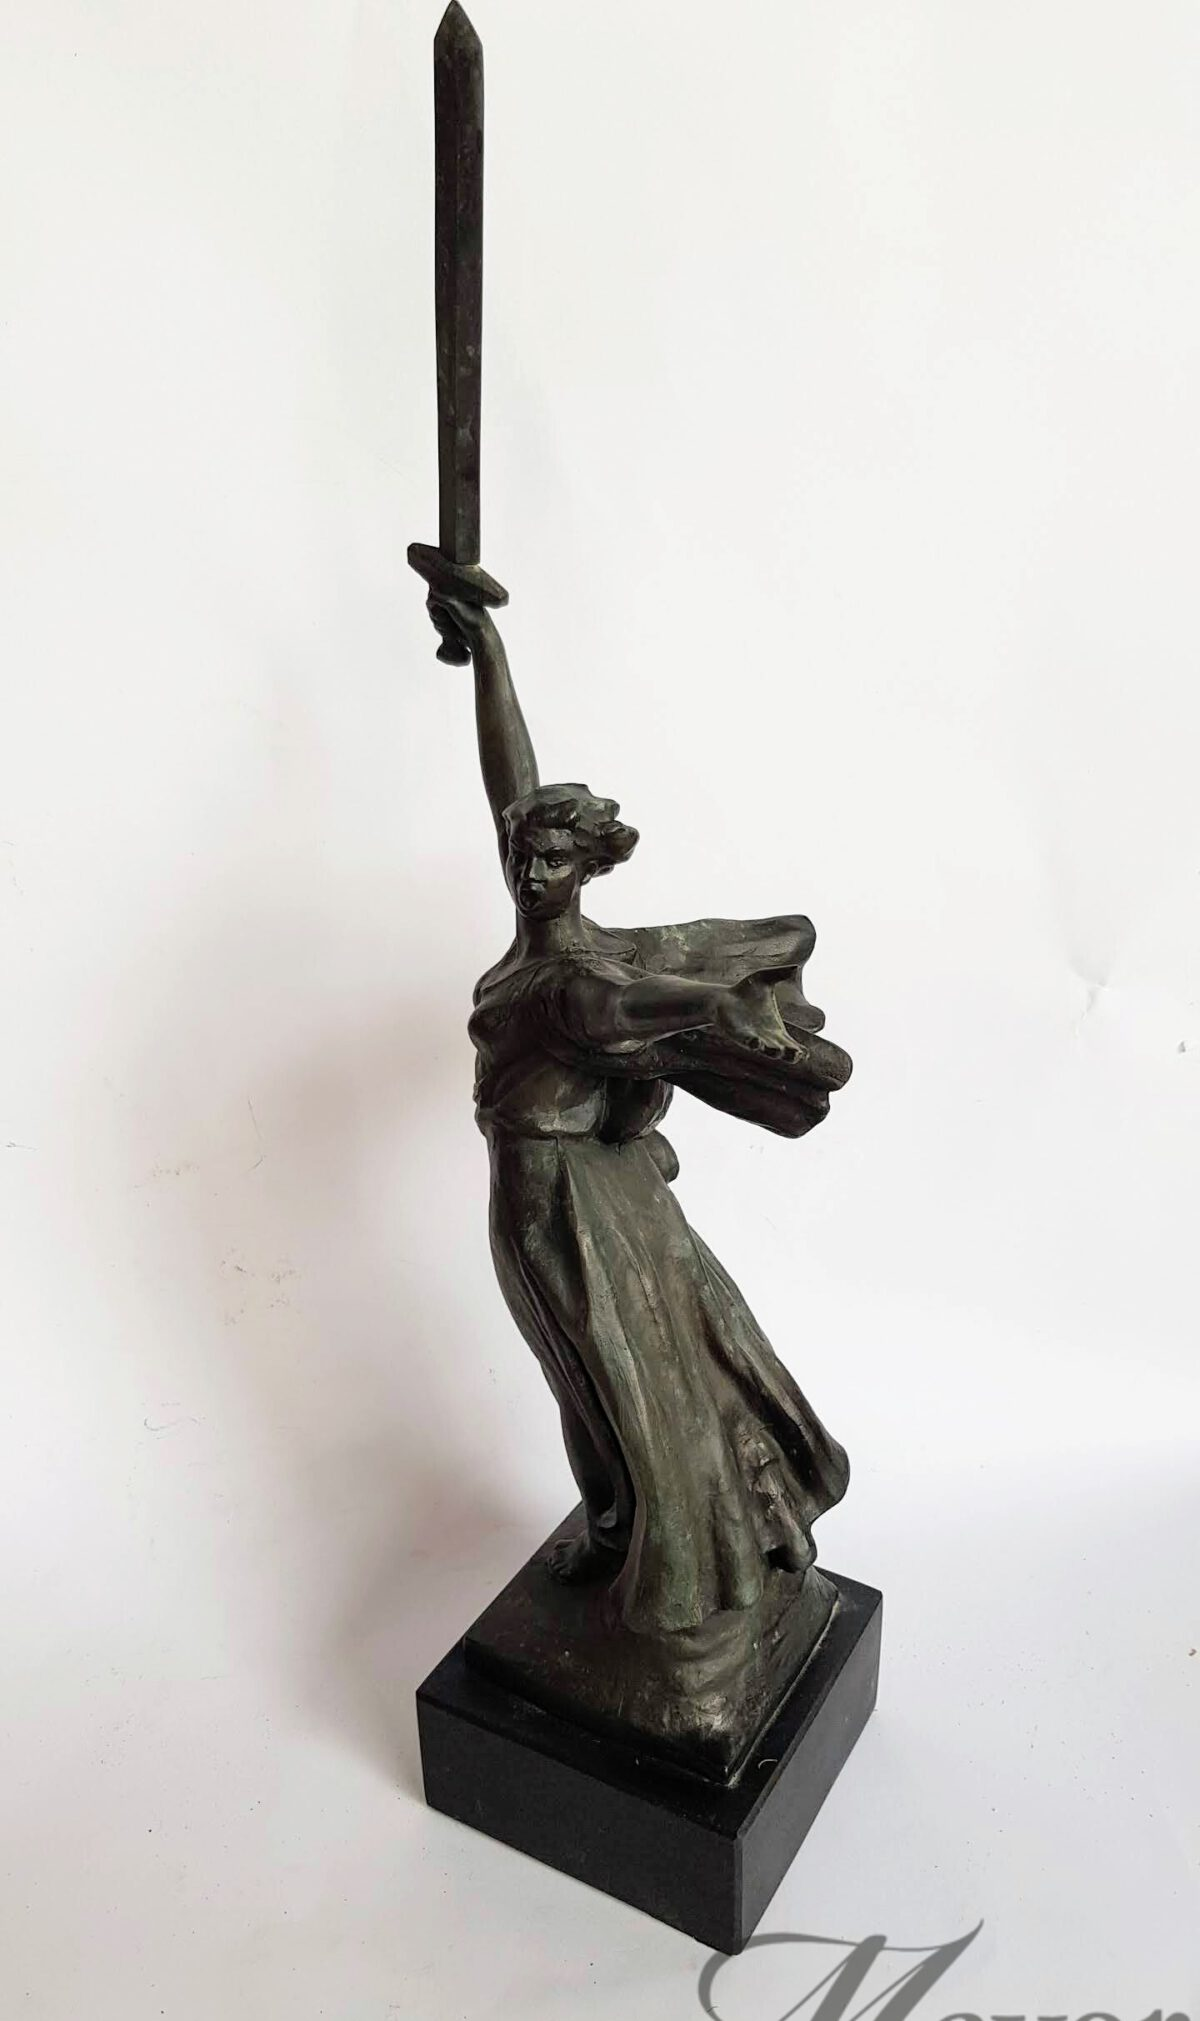 The Motherland Calls by Sculptor Yevgeny Vuchetich